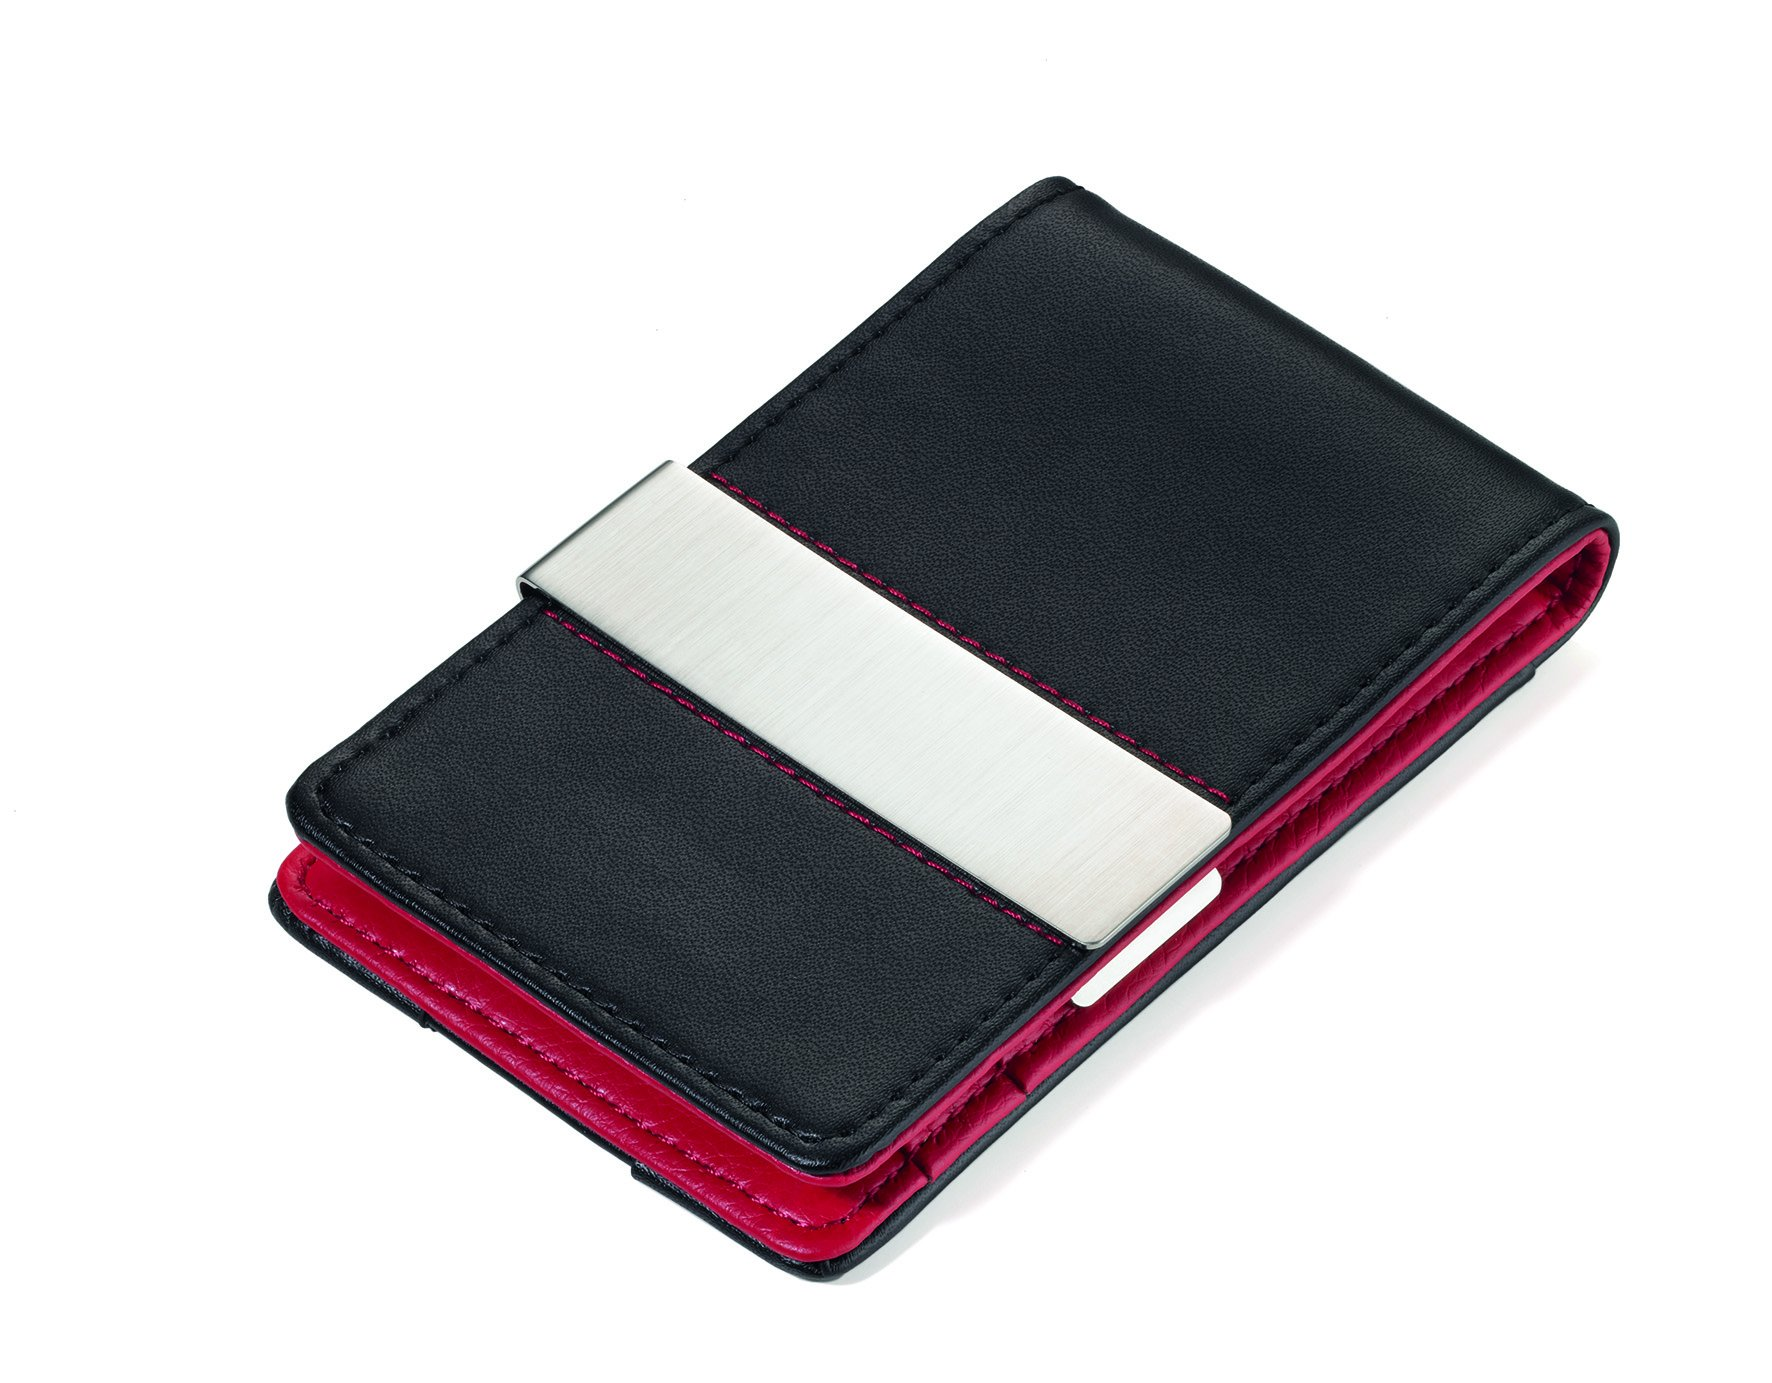 Troika Red and Black Flat Wallet with RIFD Protection (CCC1532LE)